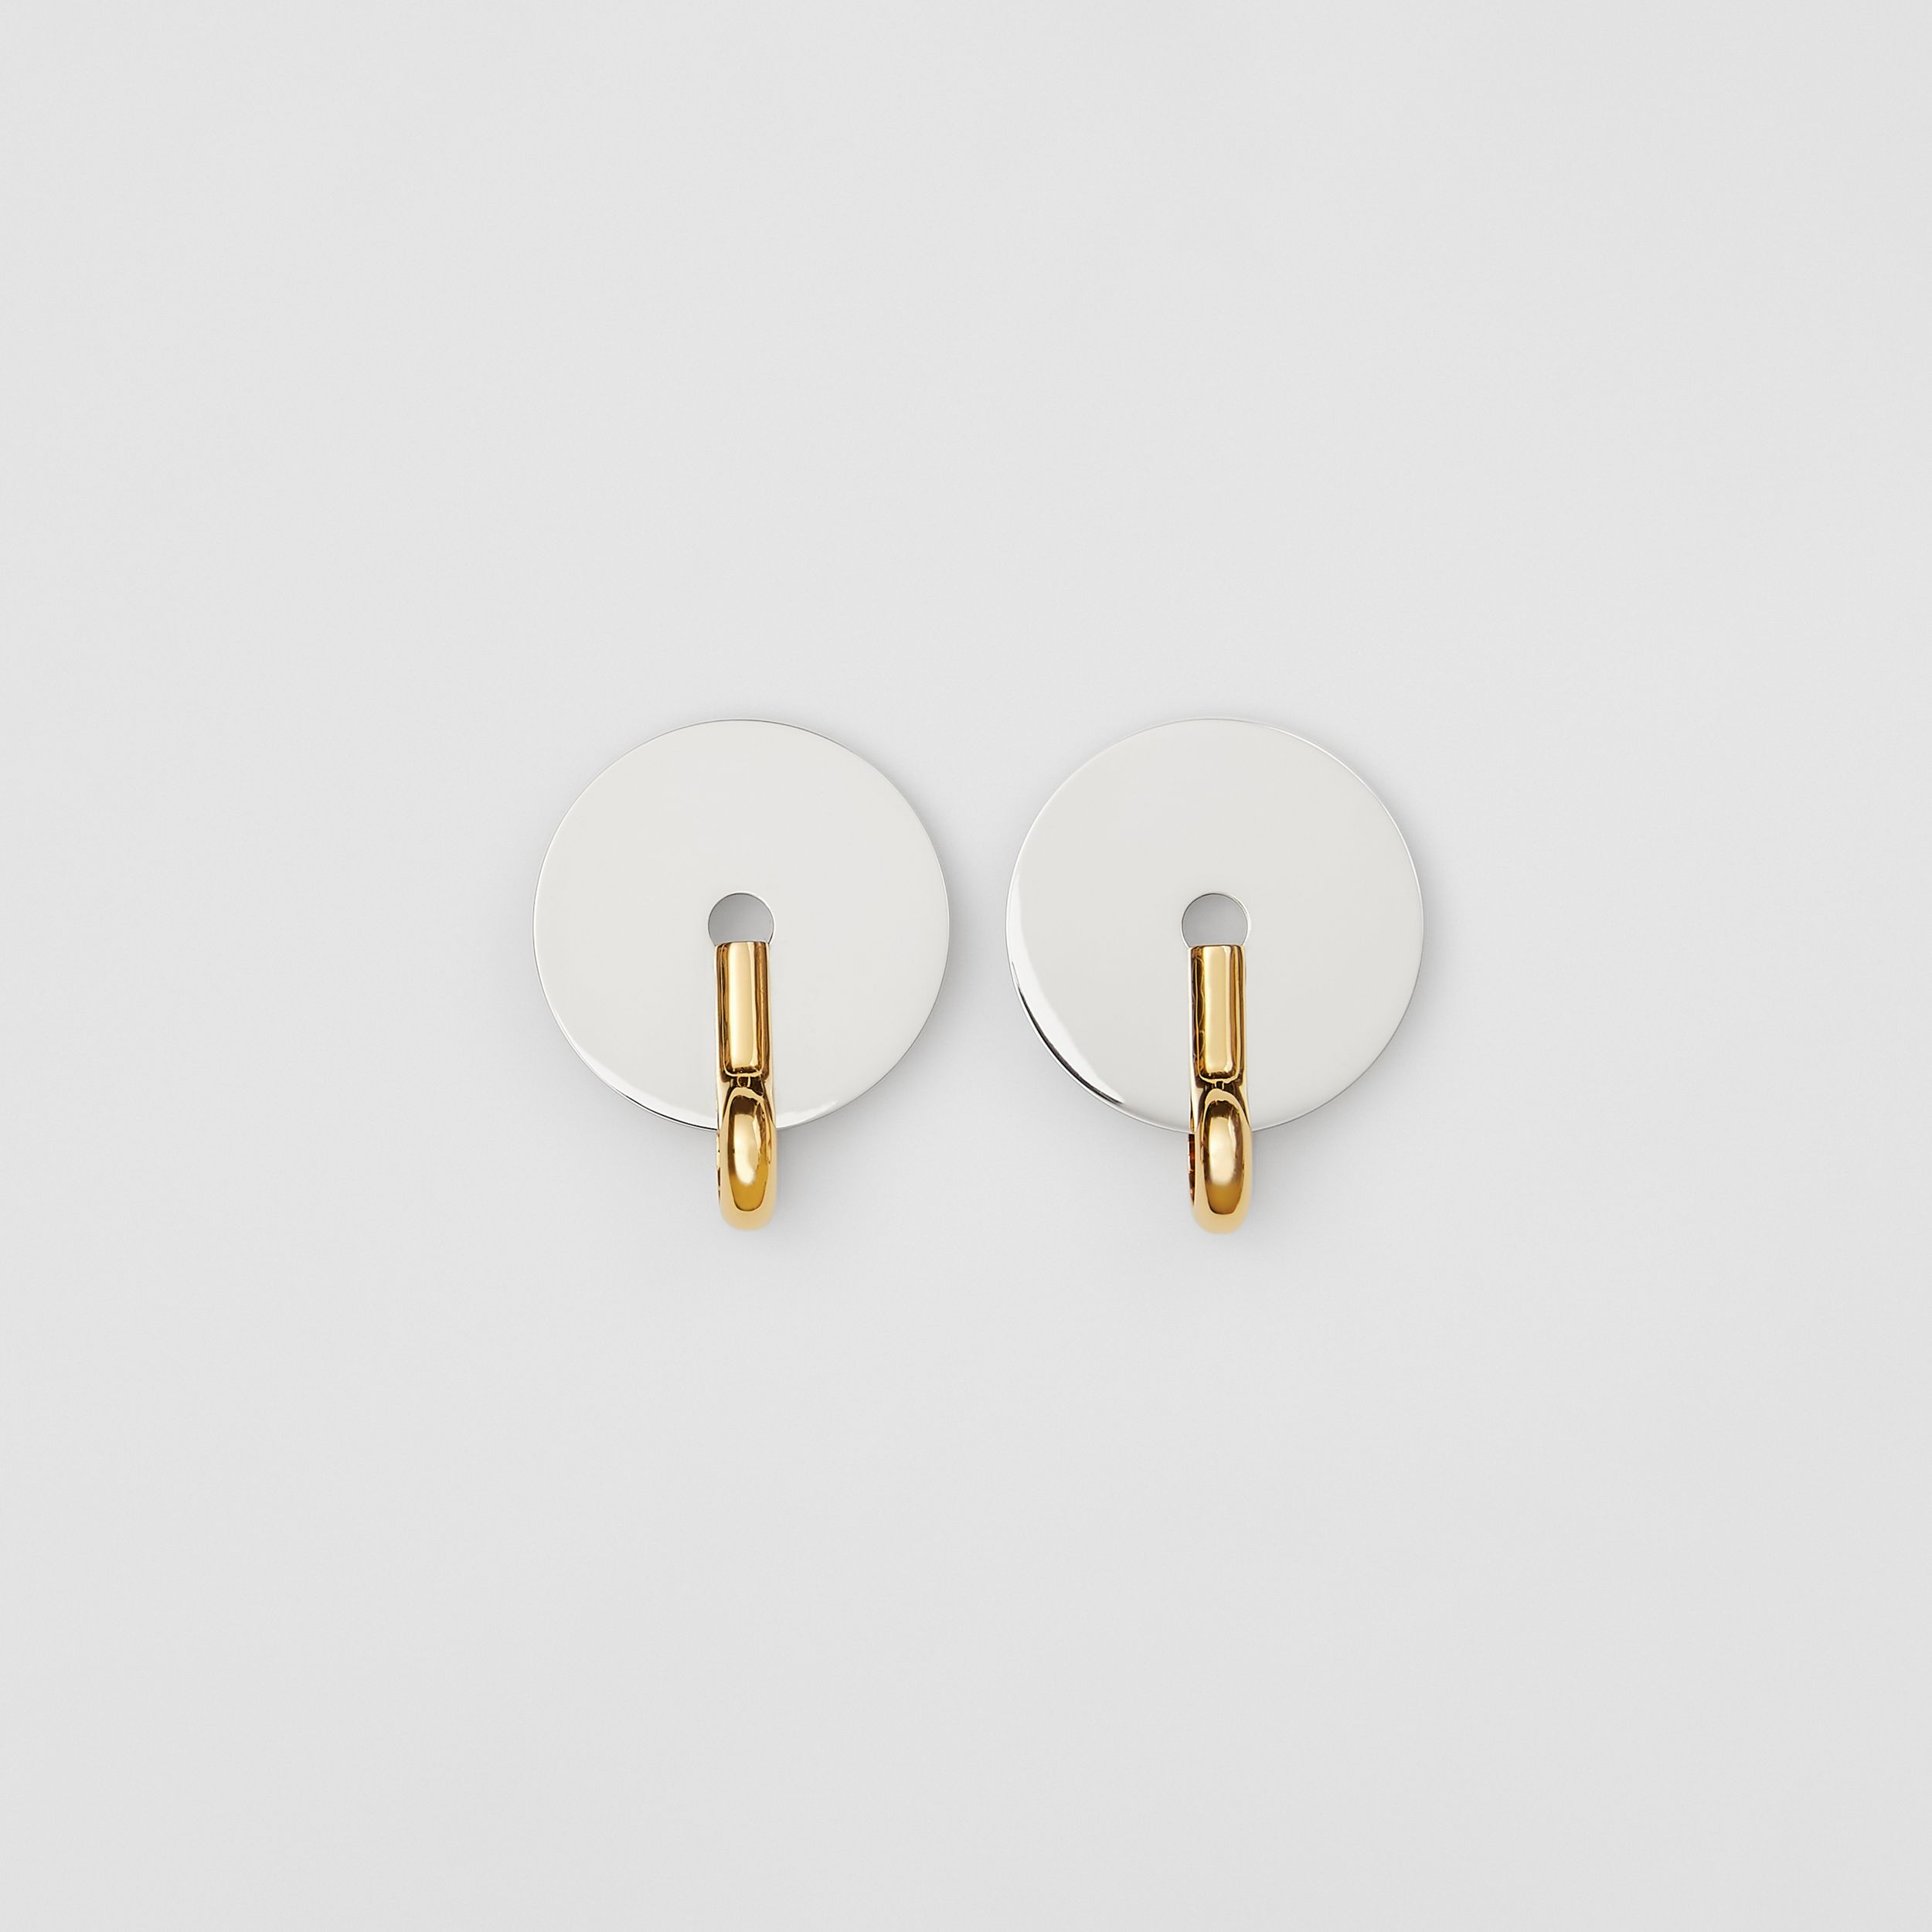 Palladium and Gold-plated Disc Earrings in Palladium/light - Women | Burberry - 1